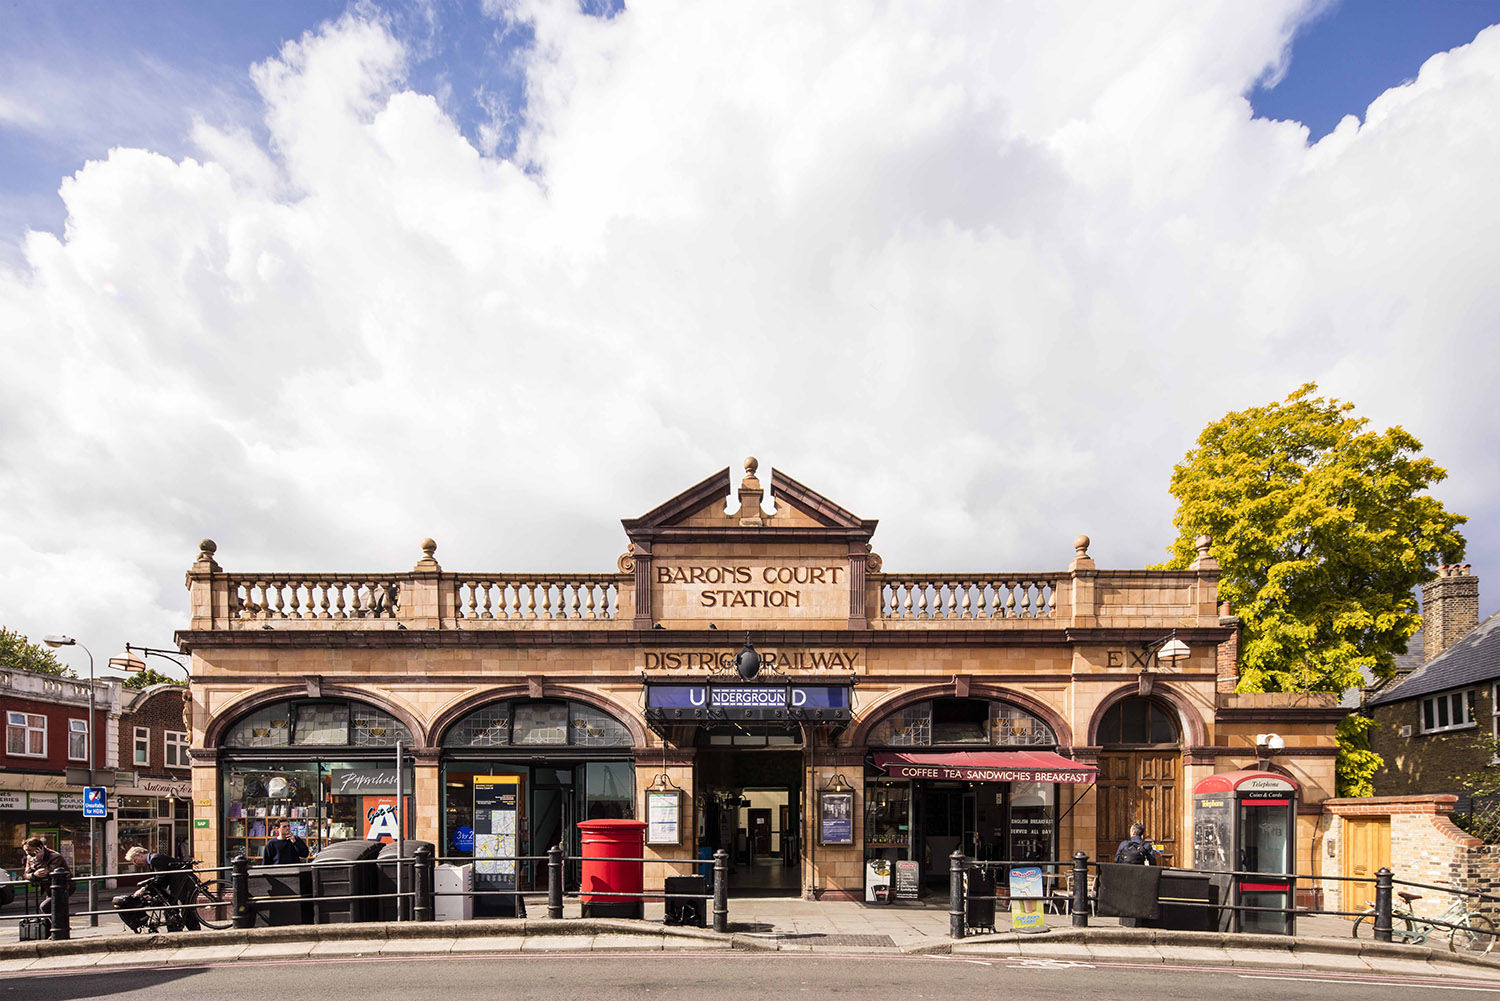 BARONS COURT STATION / ARCHITECTURE OF THE UNDERGROUND